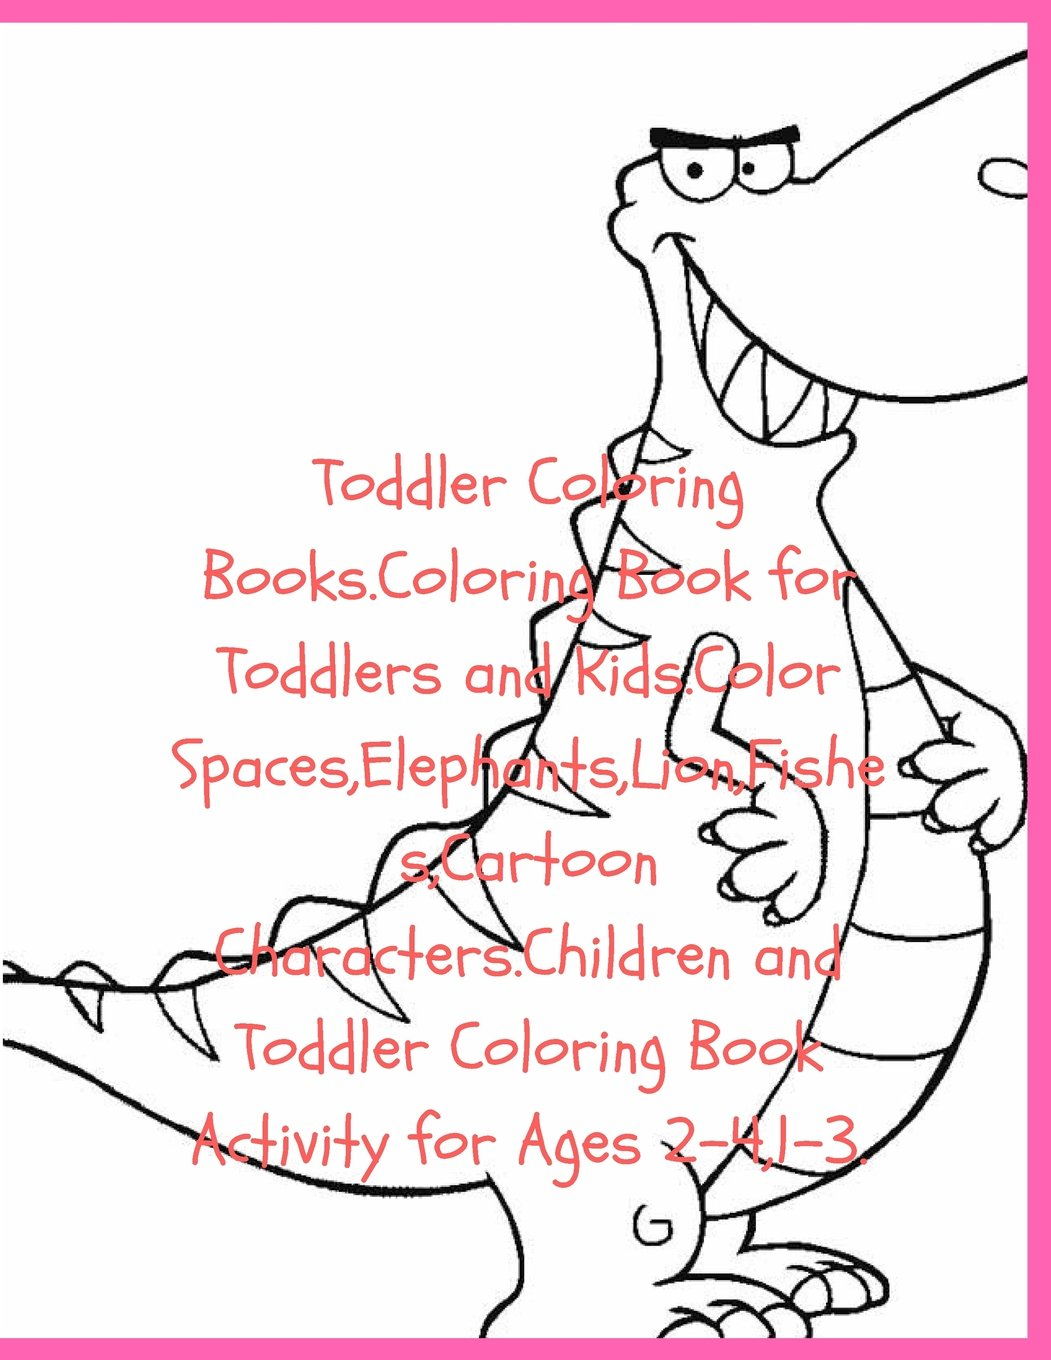 Toddler Coloring Books Coloring Book For Toddlers And Kids Color